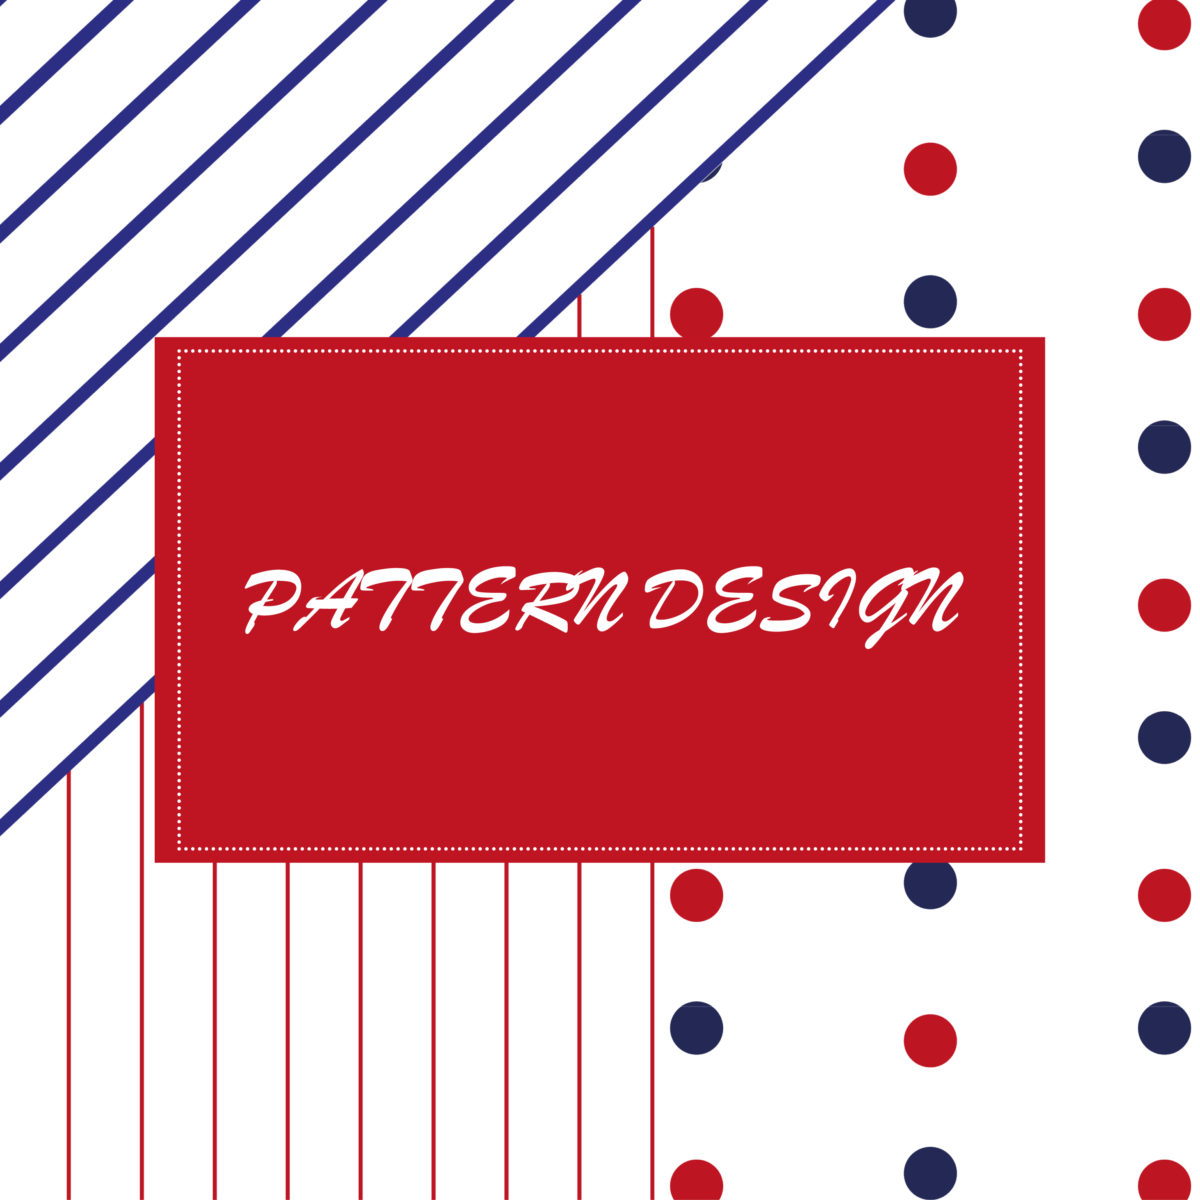 pattern-design-creation-motifs-sh-graphiste-oise